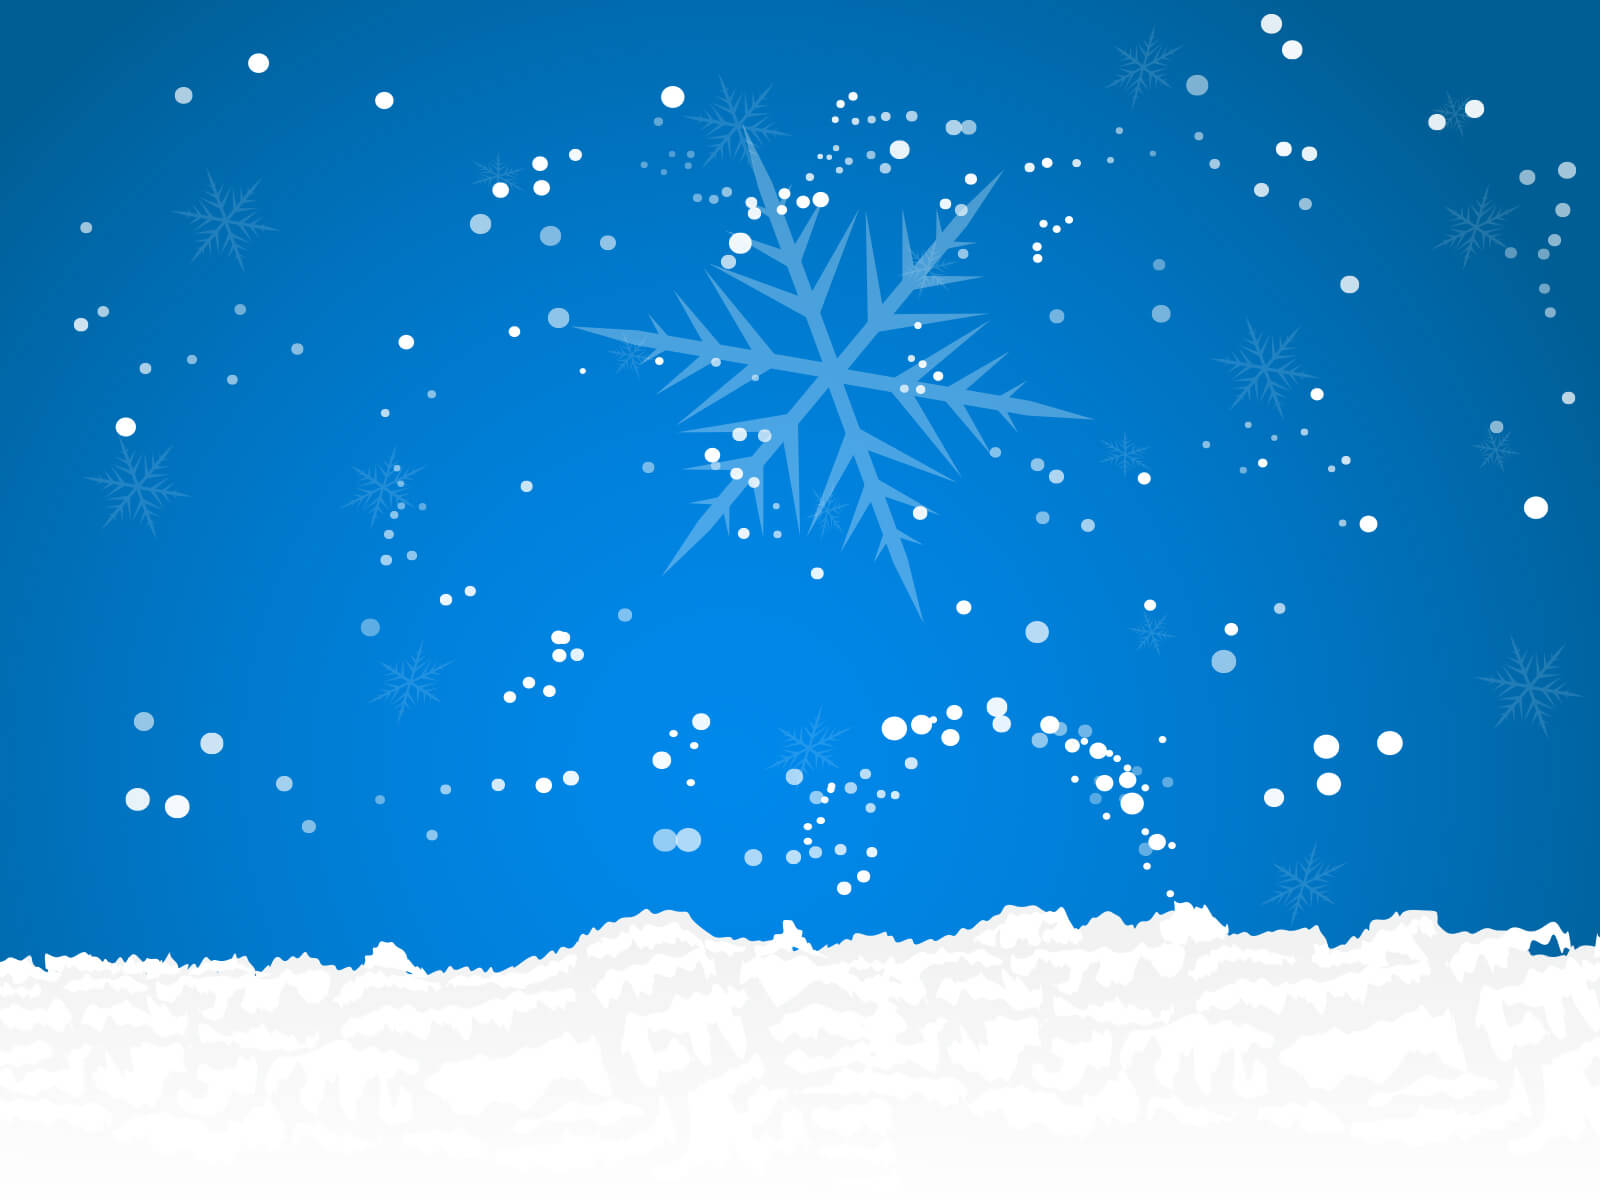 Snow Powerpoint - Free Ppt Backgrounds And Templates Within Snow Powerpoint Template